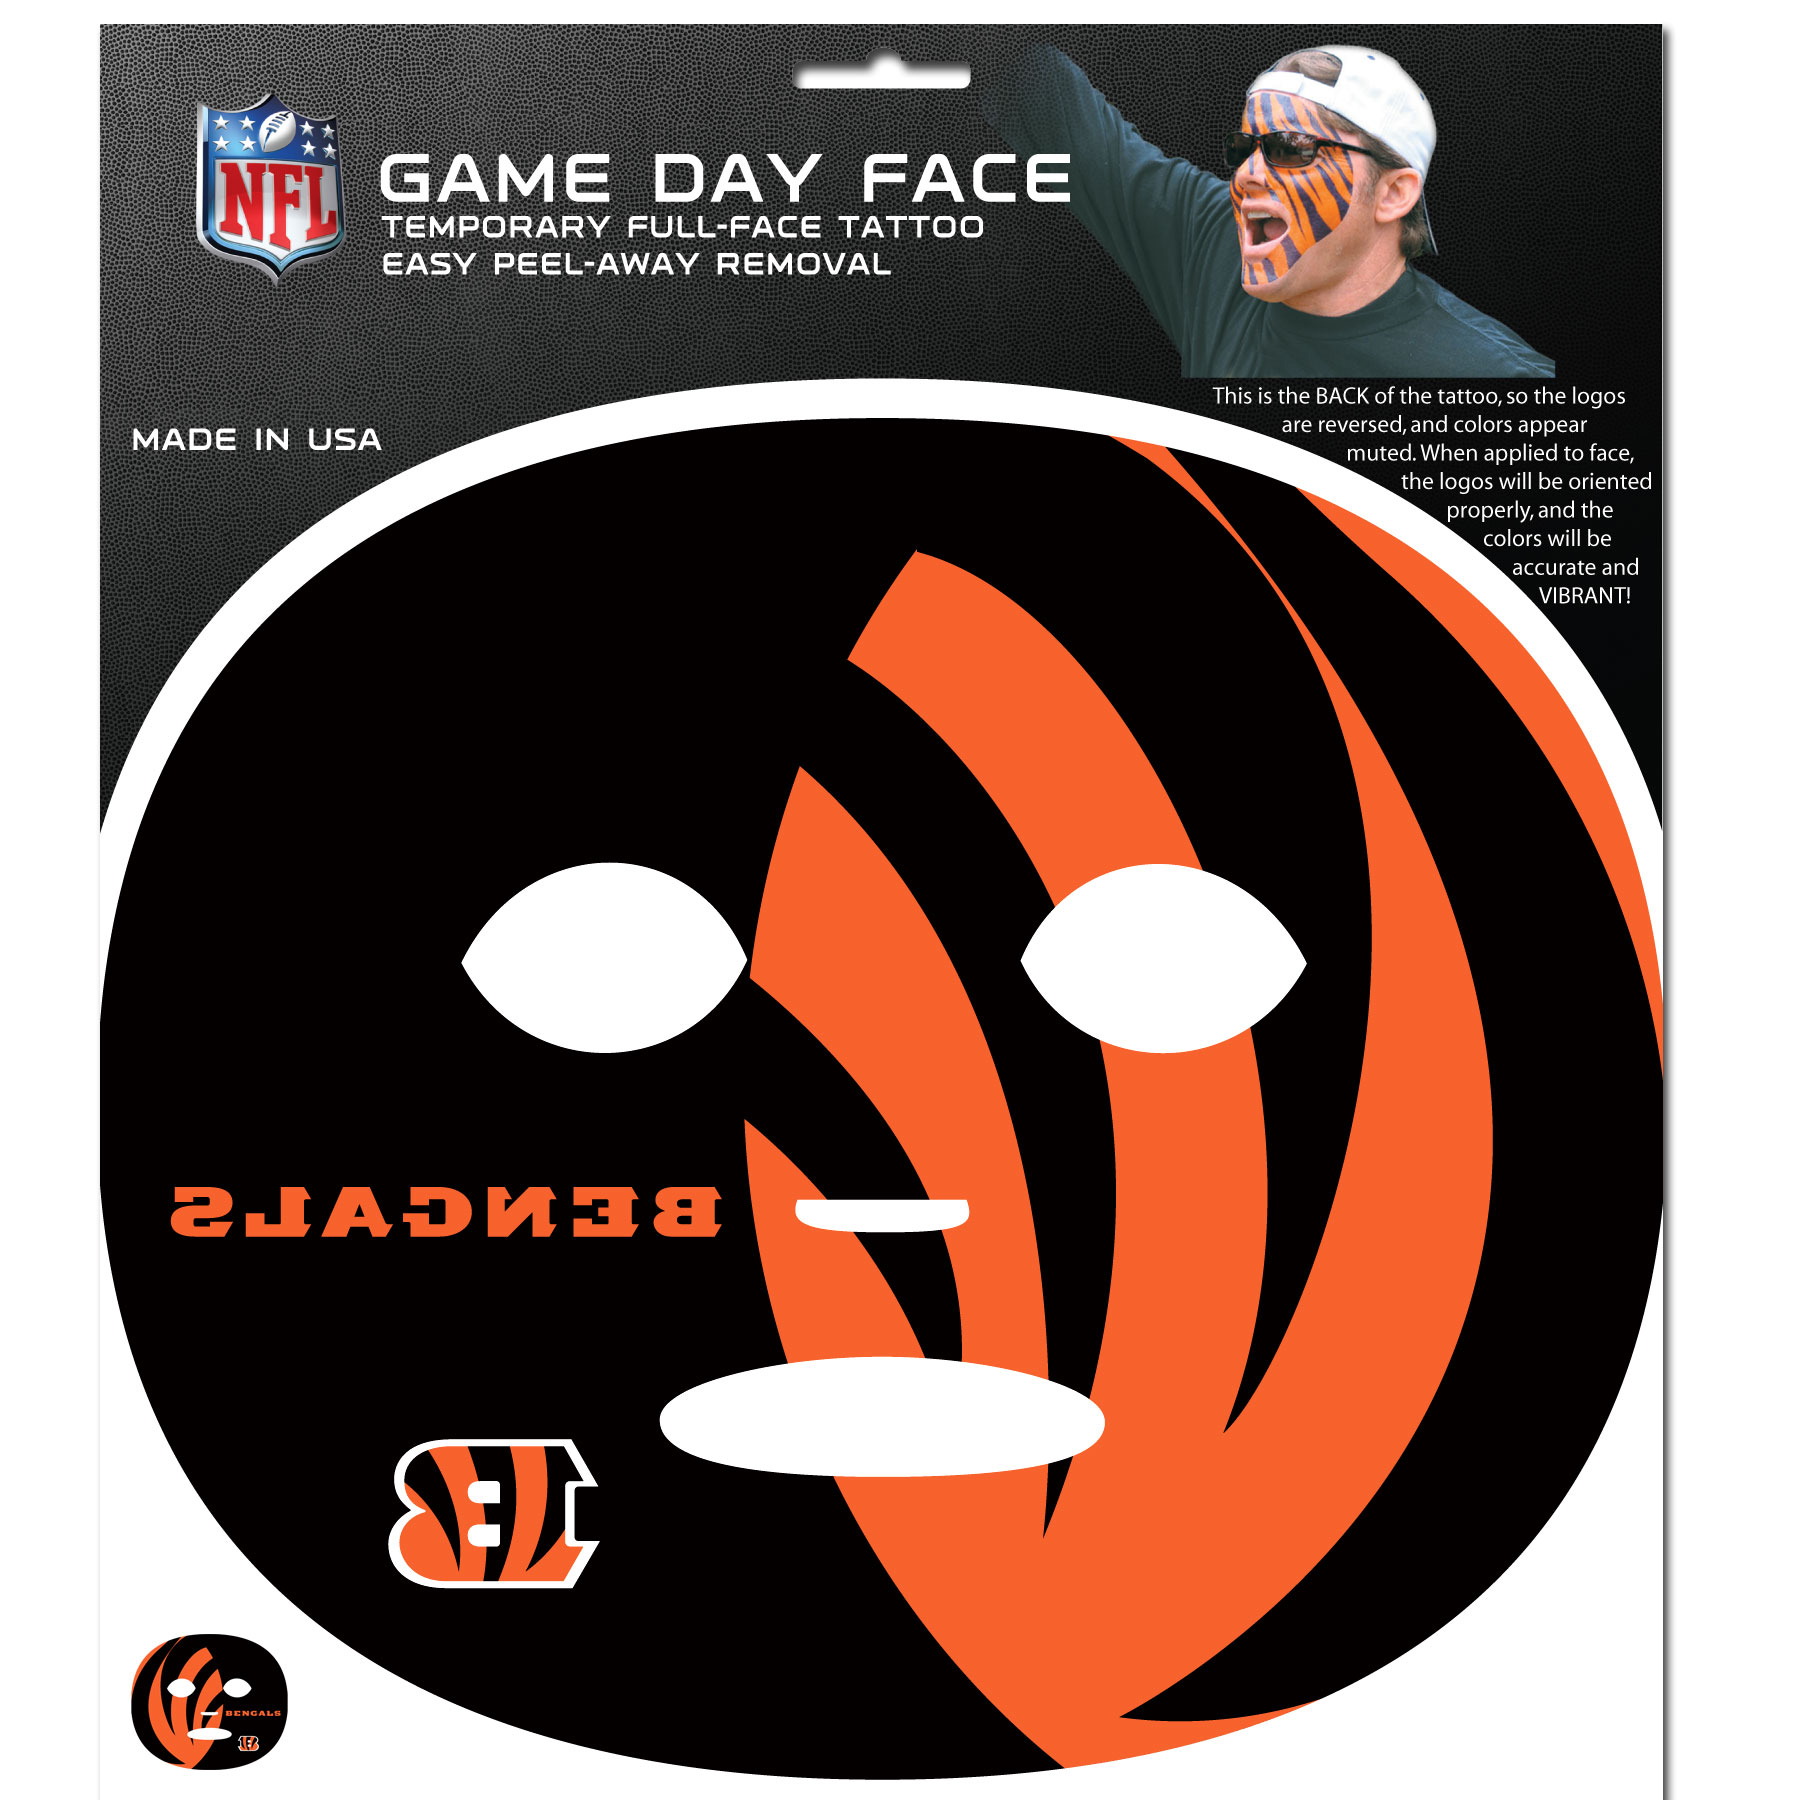 Cincinnati Bengals Game Face Temporary Tattoo - No better way to show your Cincinnati Bengals pride than by painting your face. Siskiyou's Game Day Face Temporary Tattoo isn't your typical face paint. It is a water based application that doesn't smudge, smear or sweat off  while you're wearing it and easily peels off after you're done celebrating your team's big Win! The temporary tattoo is large enough to trim down to fit your face.  Our Game Day Face Temporary Tattoo's are fun for fans of all ages. You may have seen our product before,  these are the same Temporary Face Tattoos as pitched on ABC's Shark Tank.